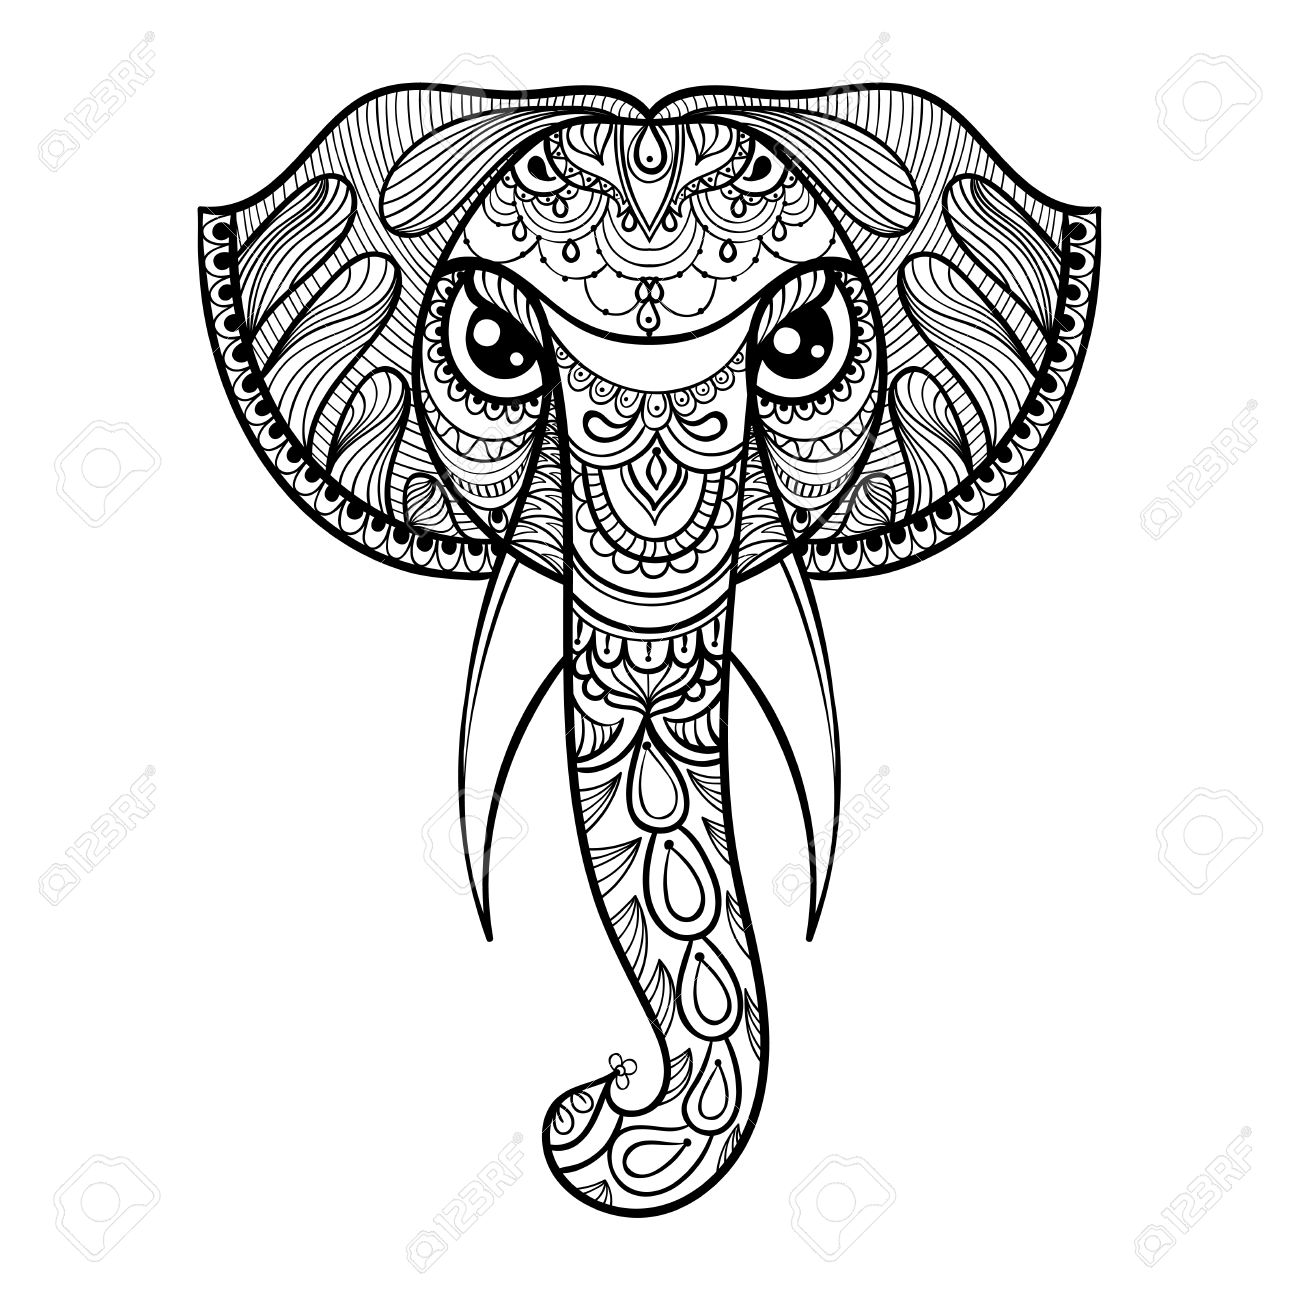 1299x1300 Vector Ornamental Head Of Elephant, Ethnic Zentangled Mascot